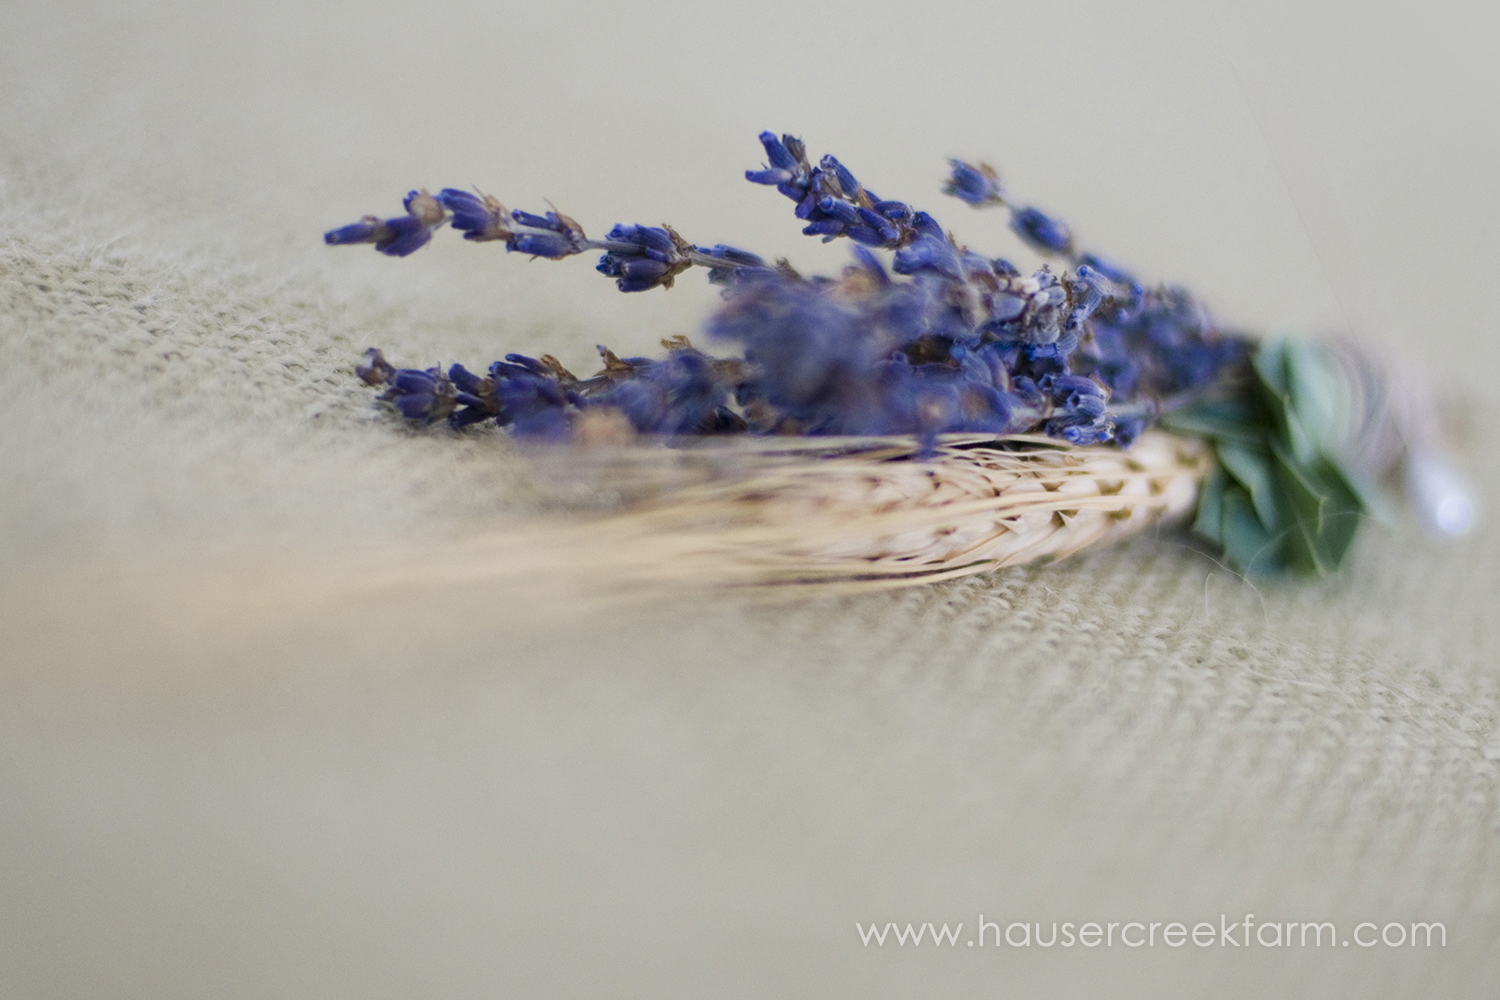 a-photo-of-lavender-by-ashley-03-bundle-froom-hauser-creek-farm.jpg